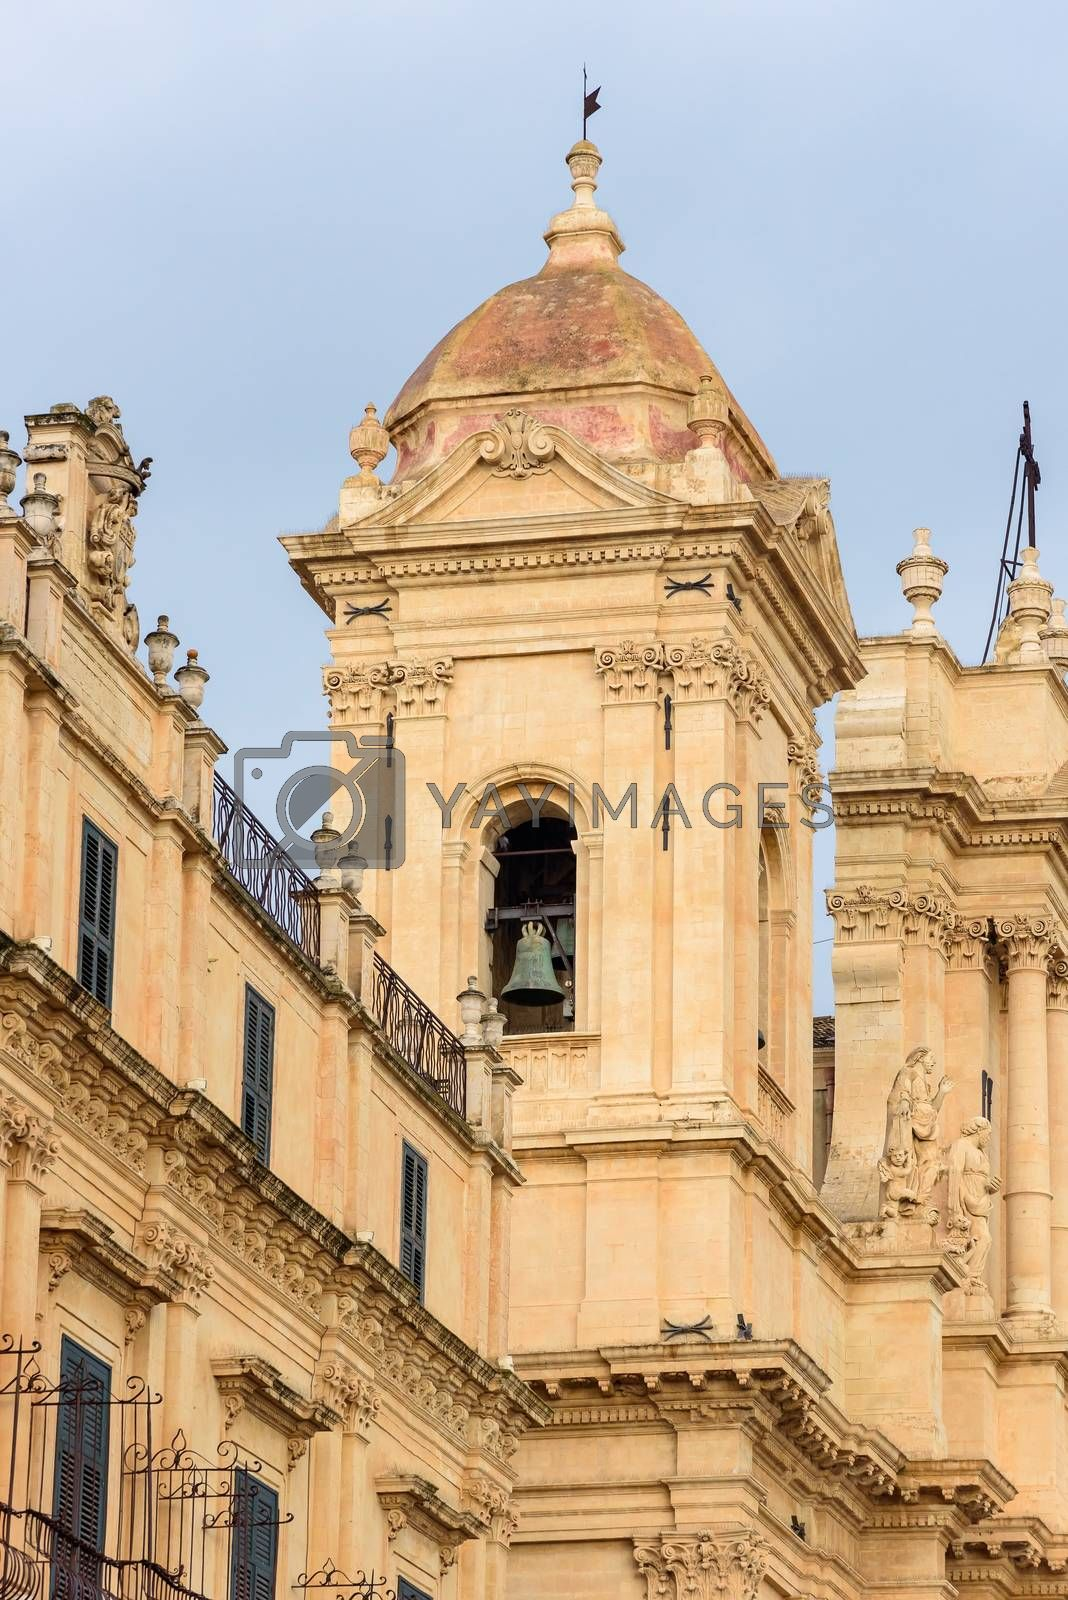 Royalty free image of Belltower of the Cathedral of Noto by mkos83